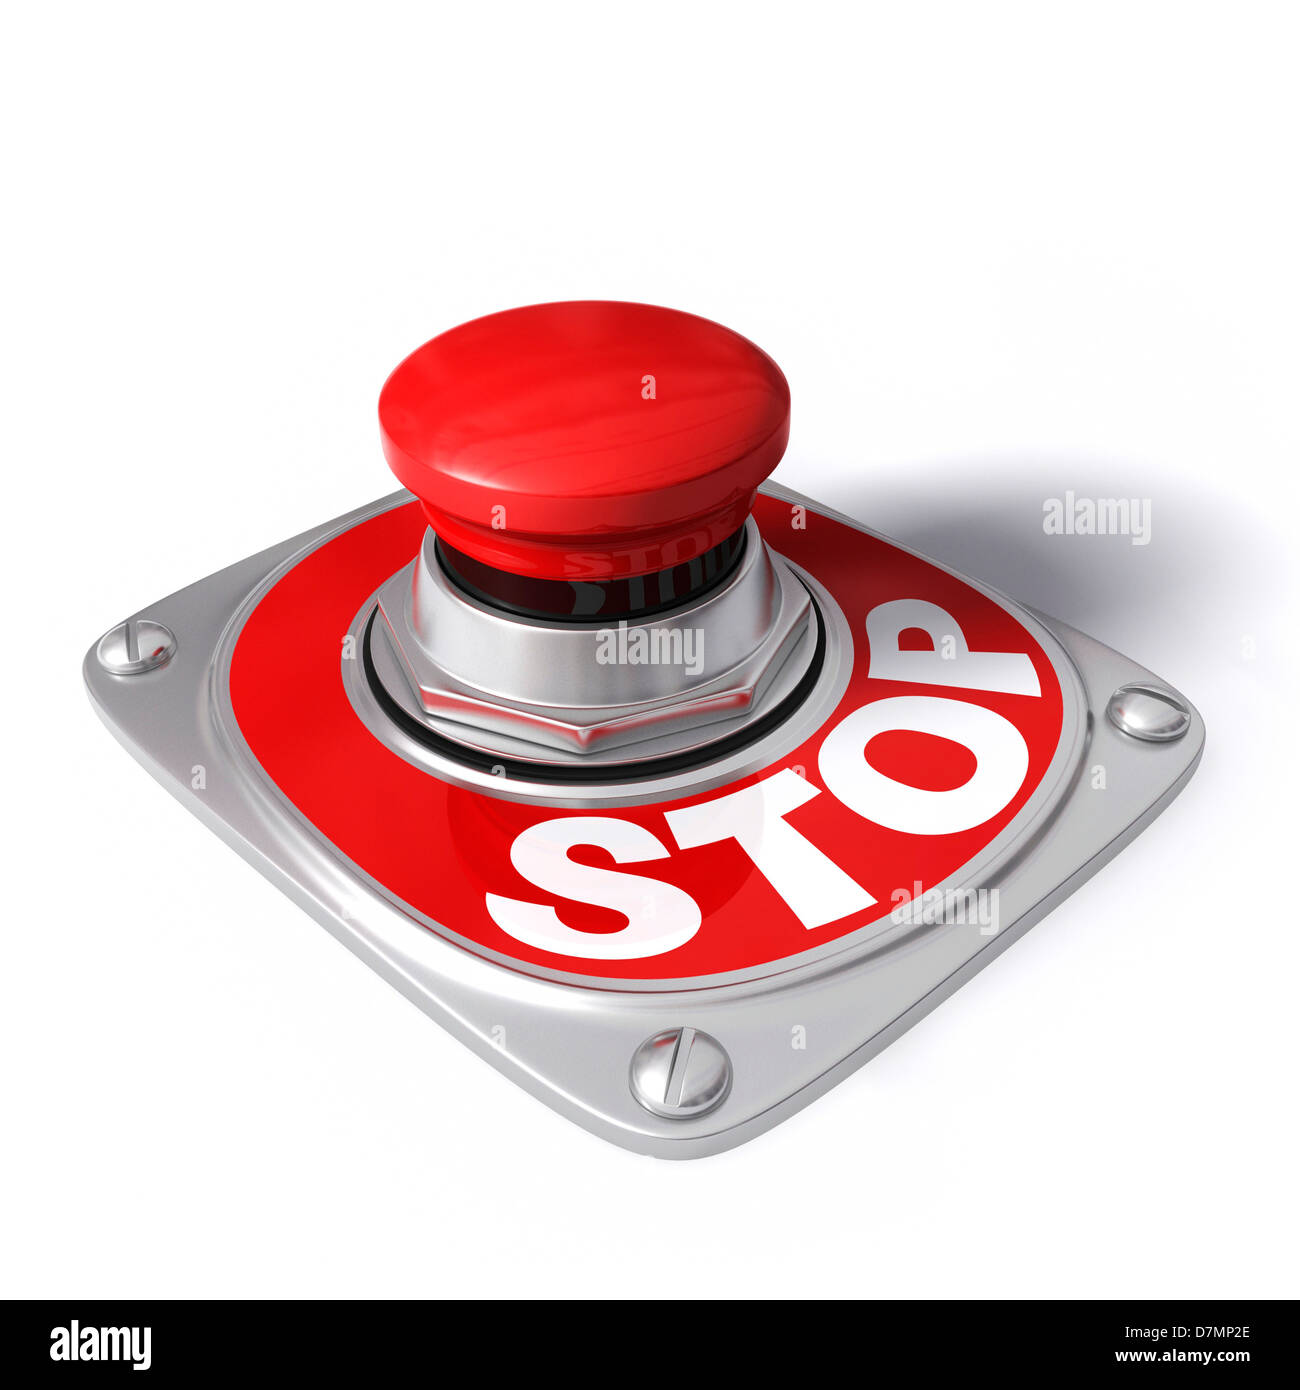 Stop button, artwork - Stock Image